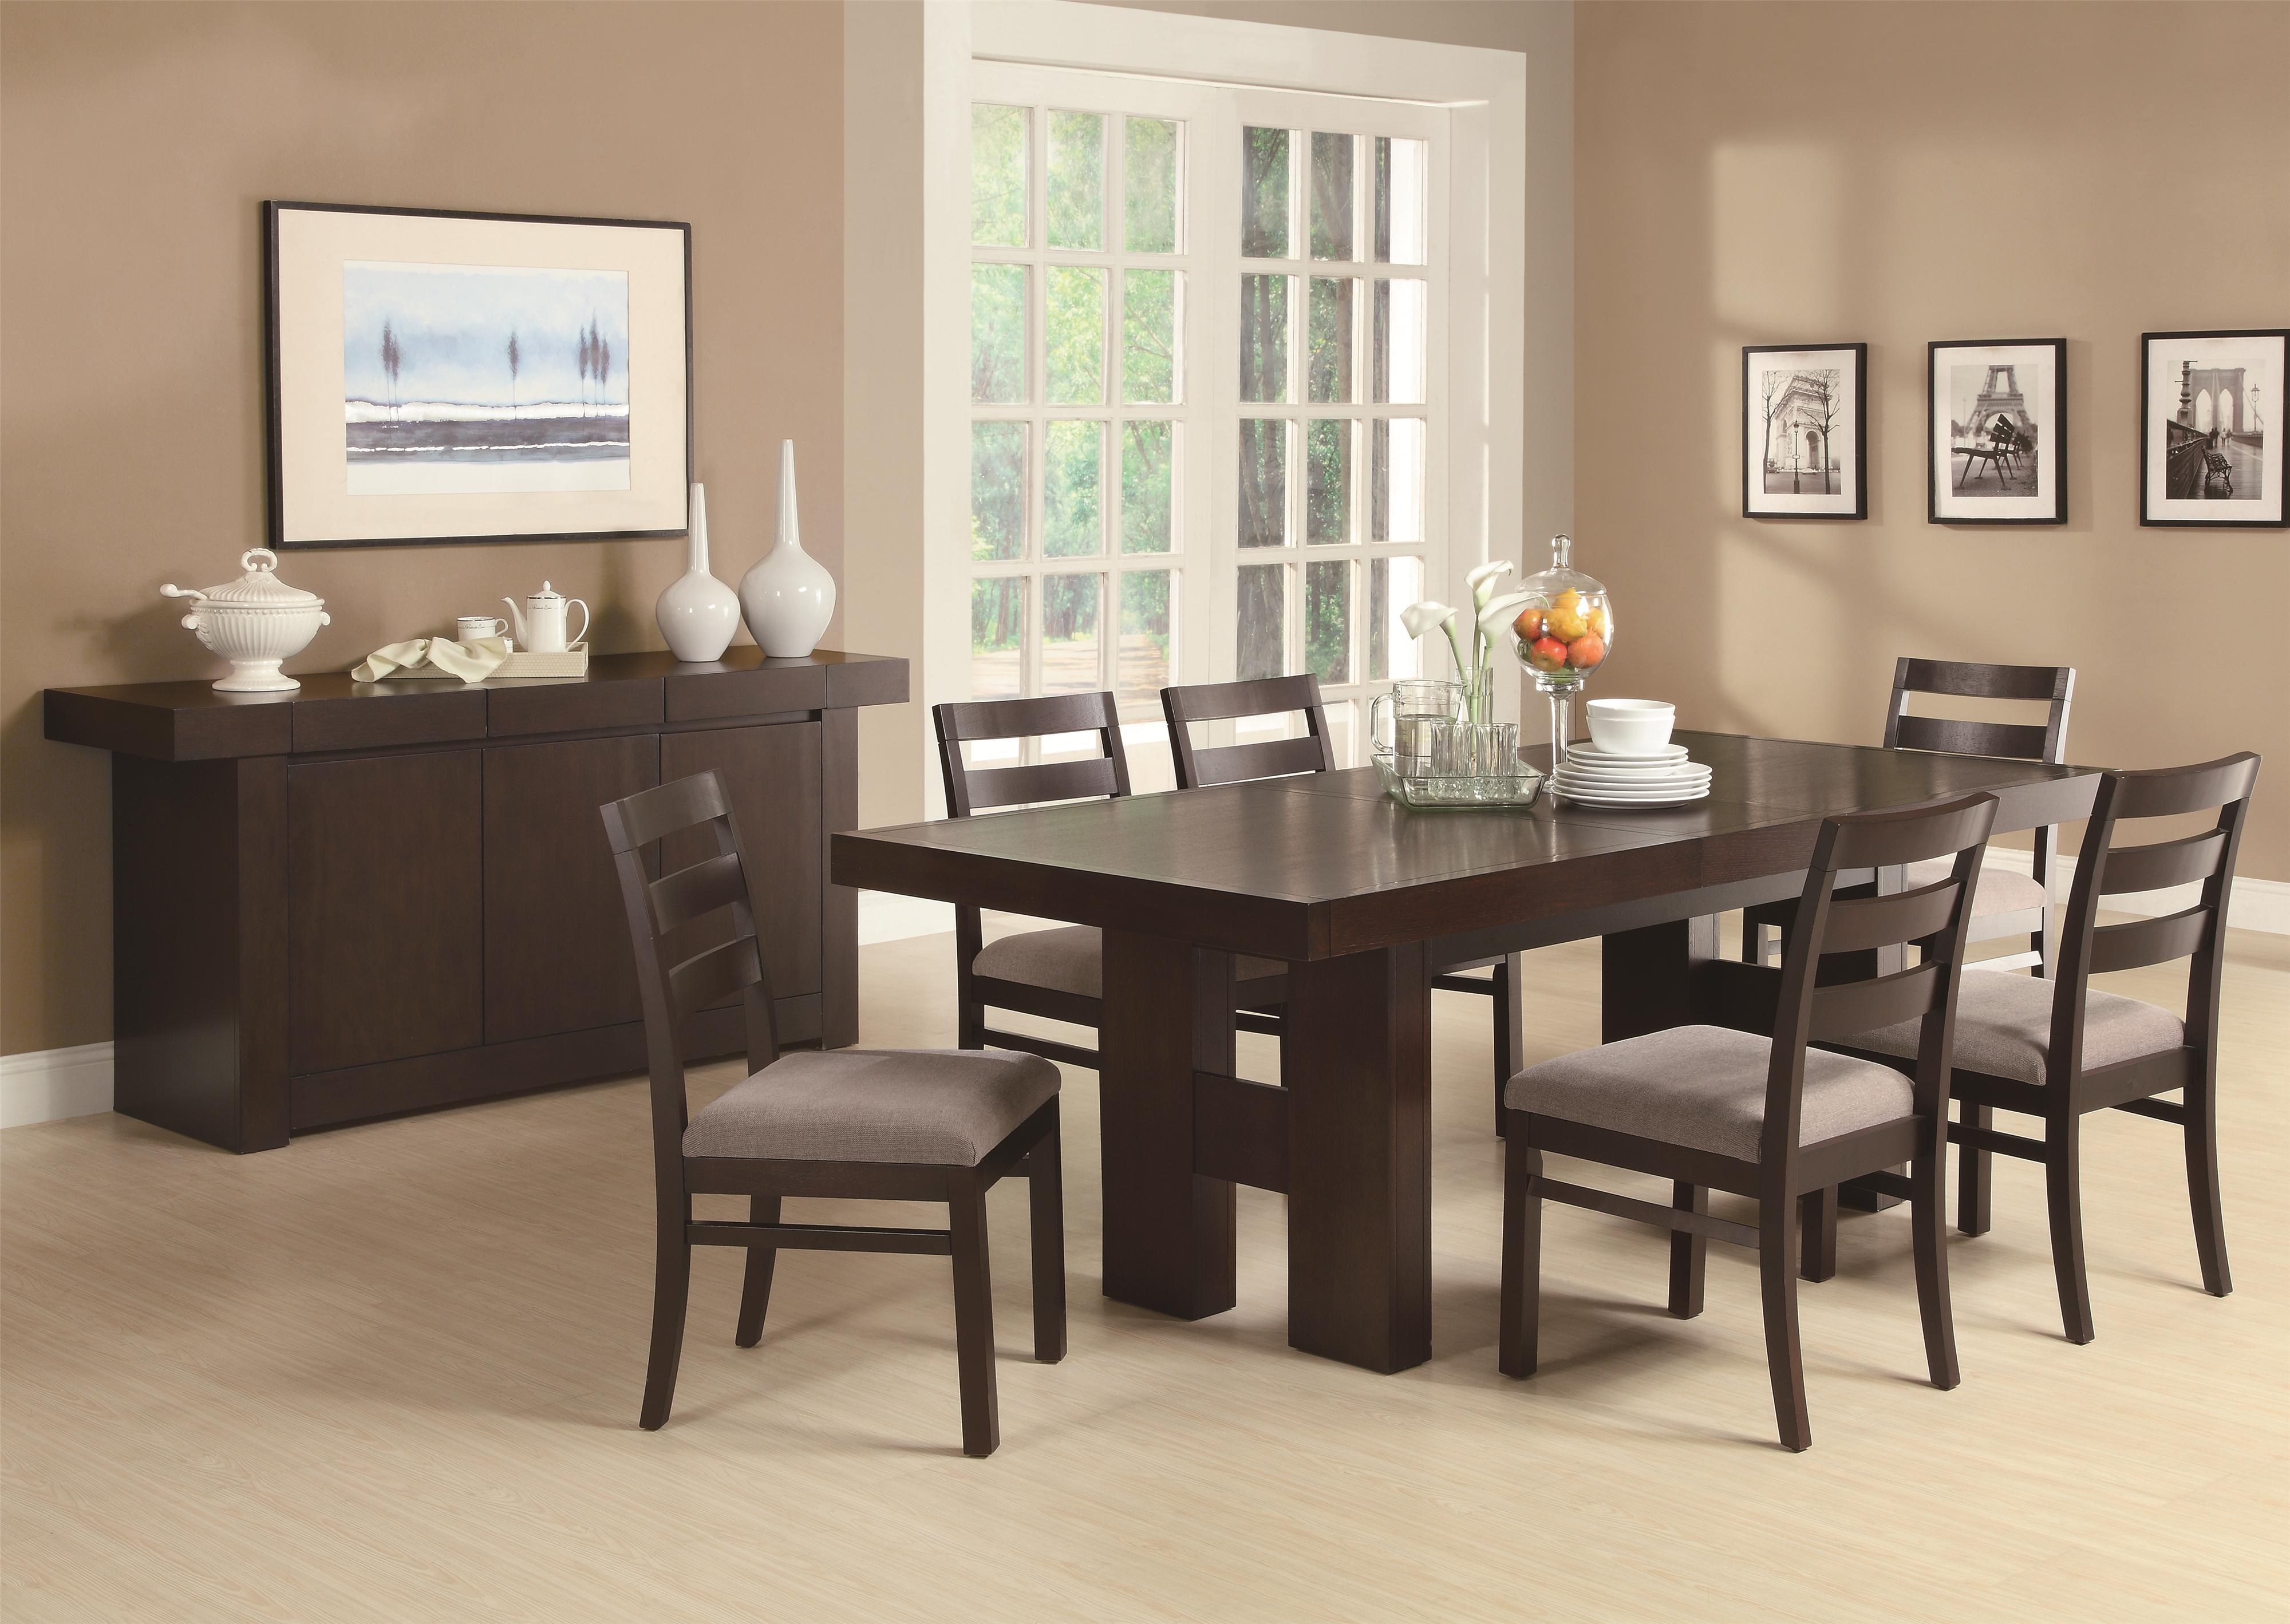 Dabny 5 Piece Rectangular Dining Table Set With Pull Out Extension Leaf